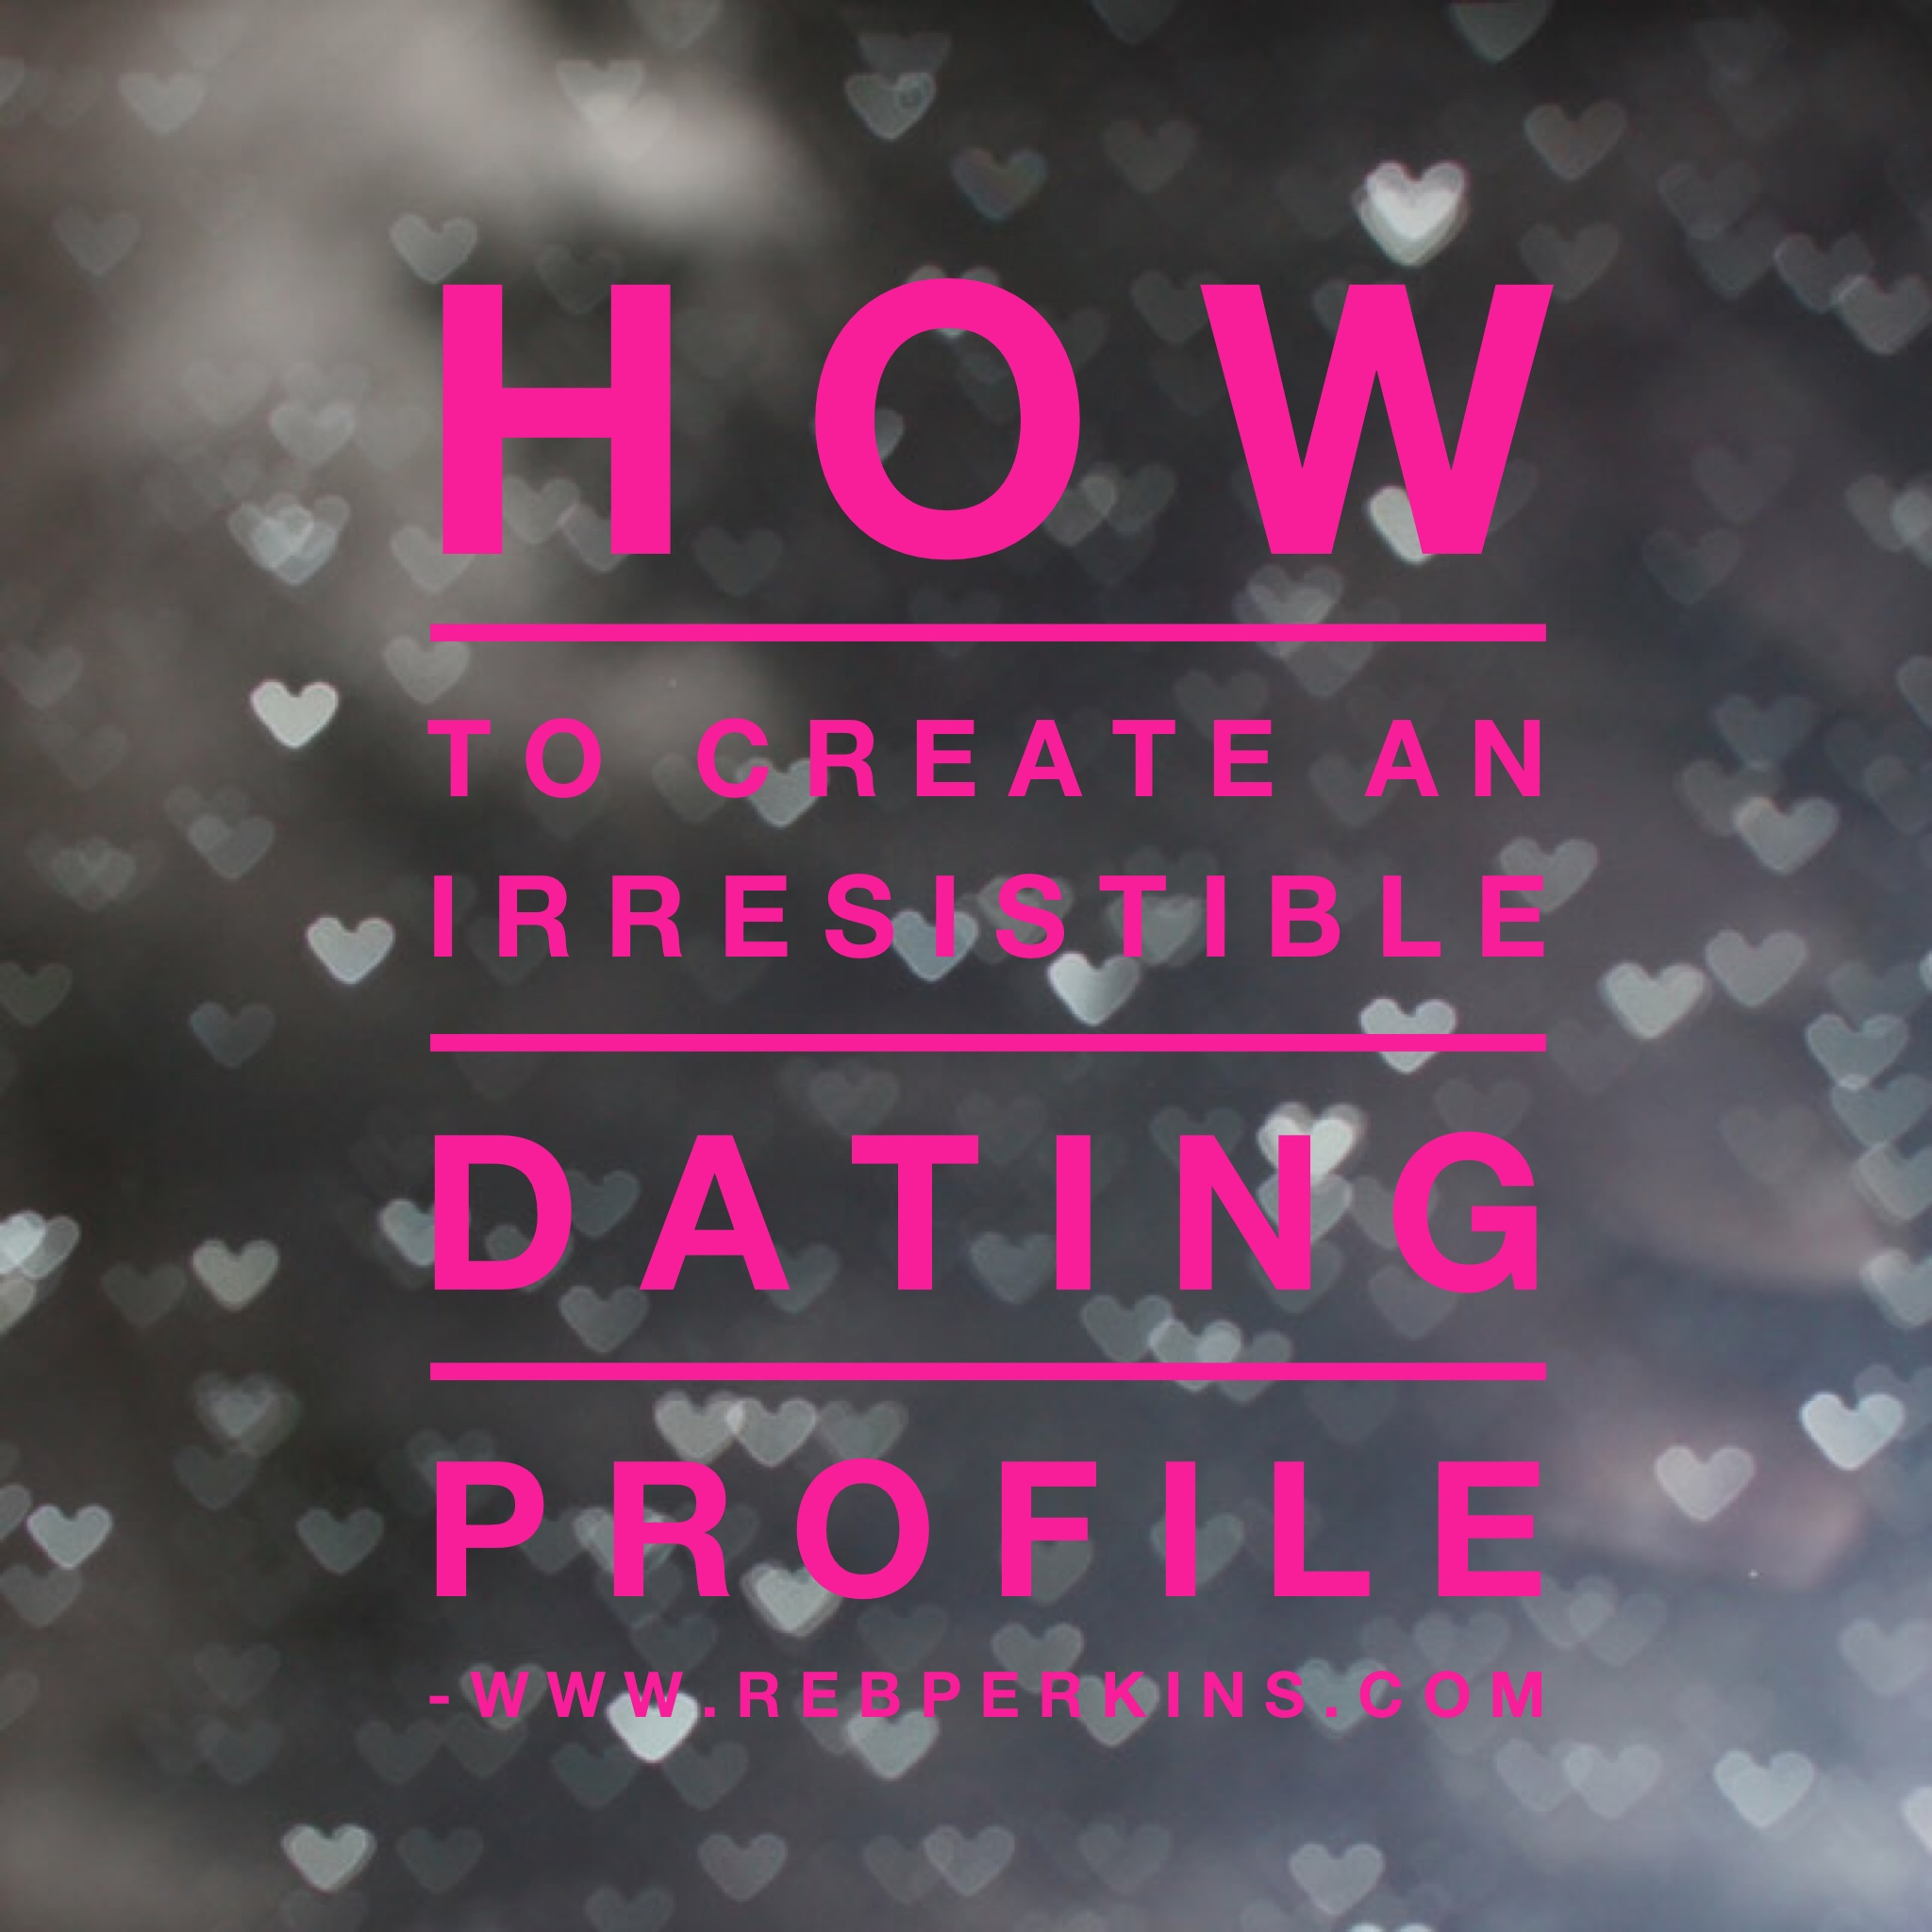 How to create a profile for online dating